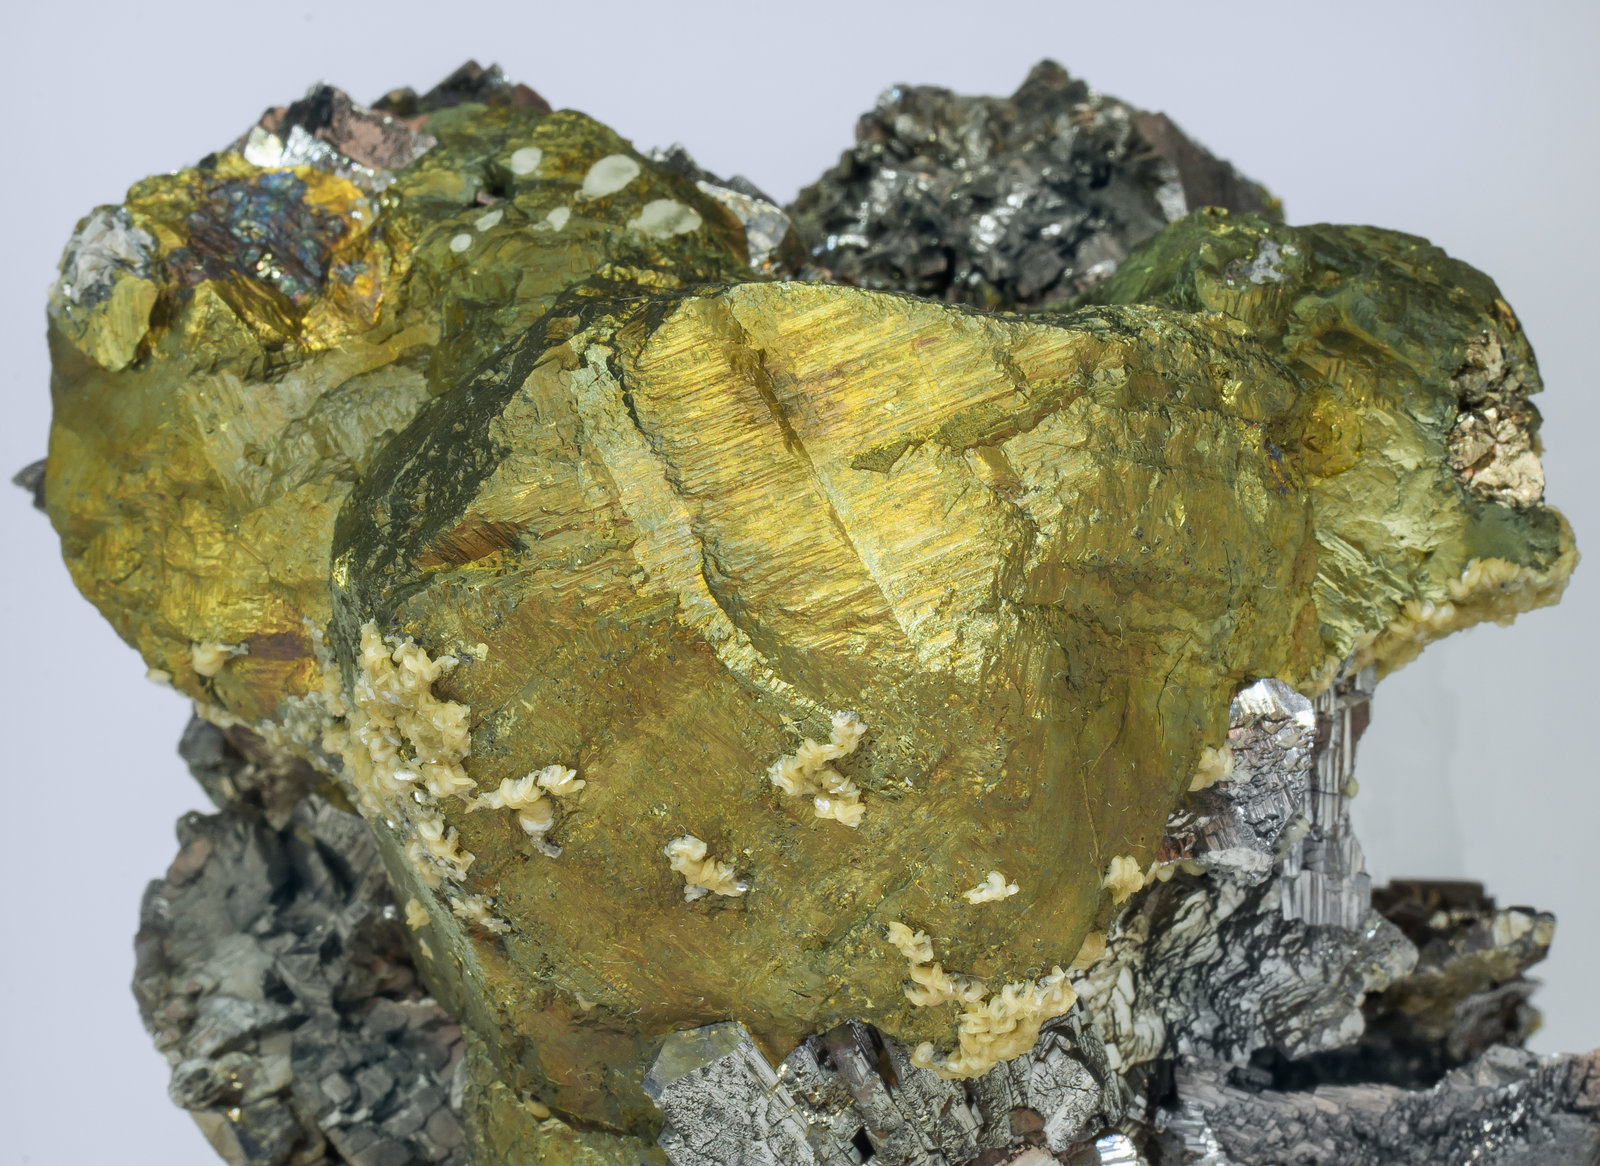 specimens/s_imagesAM3/Chalcopyrite-MR27AM3d.jpg